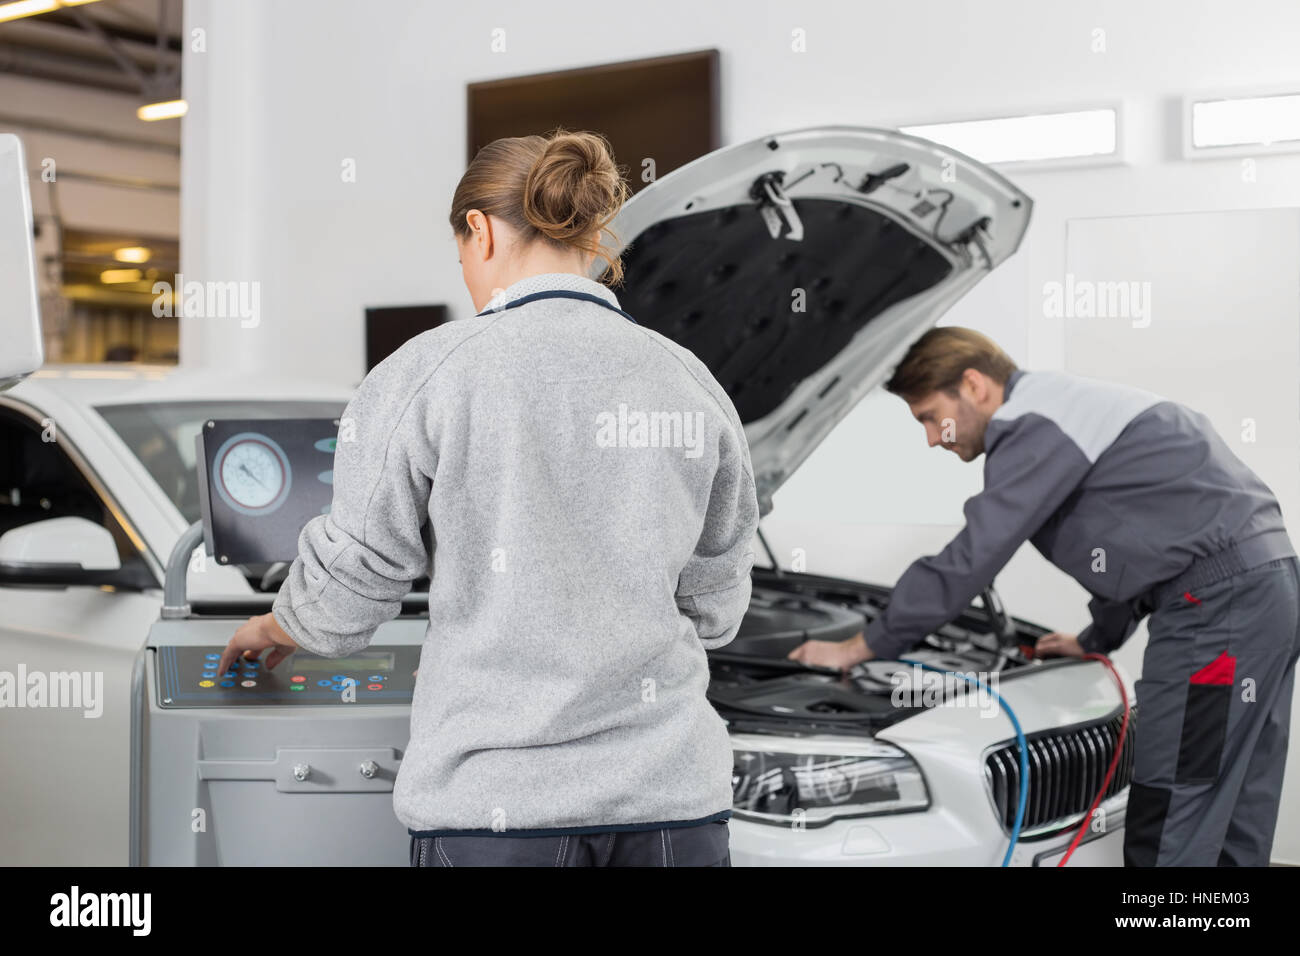 Automobile mechanics working in automobile repair shop - Stock Image